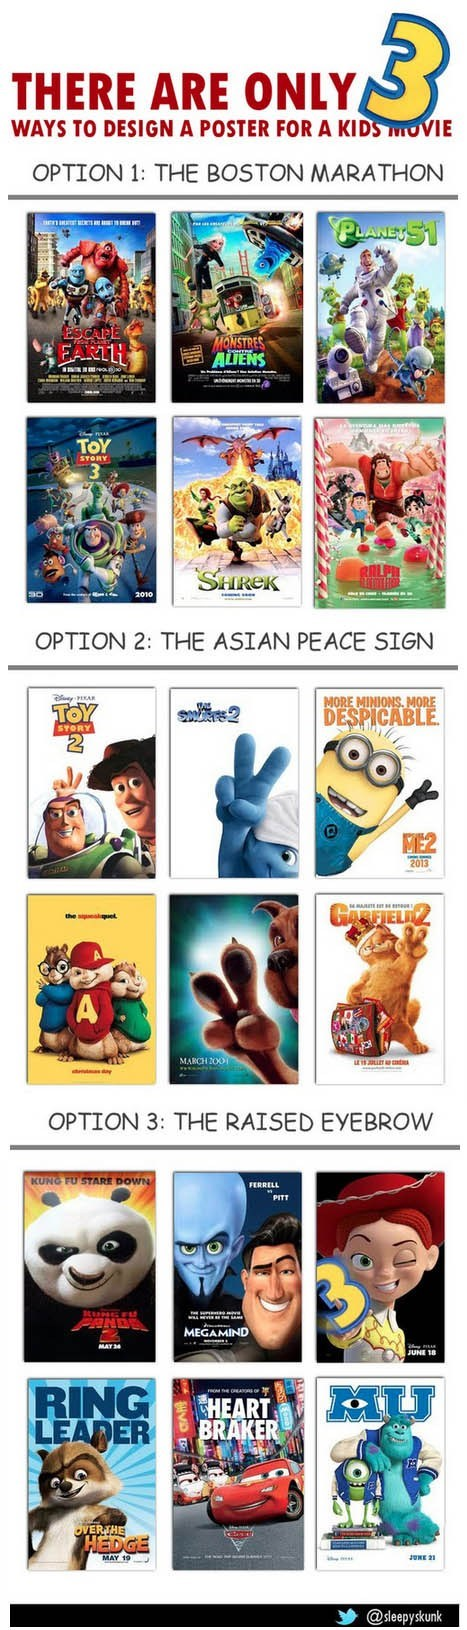 Creative Options for Designing Movie Posters for Kids is Pretty Limited